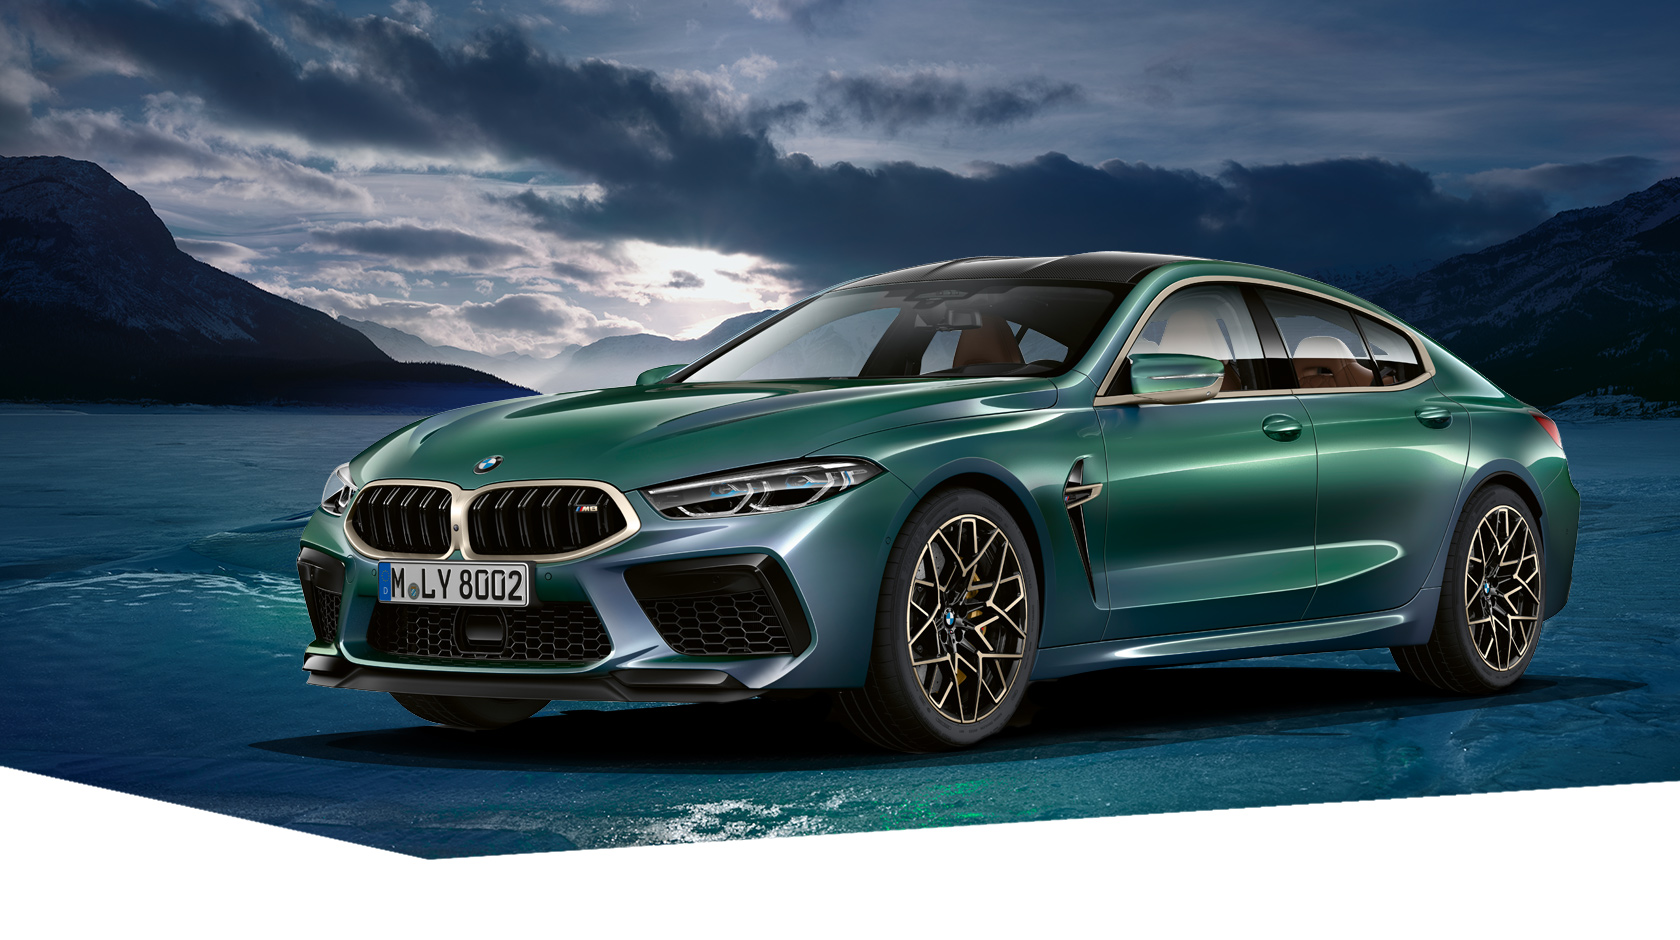 The new BMW M8 Gran Coupé First Edition